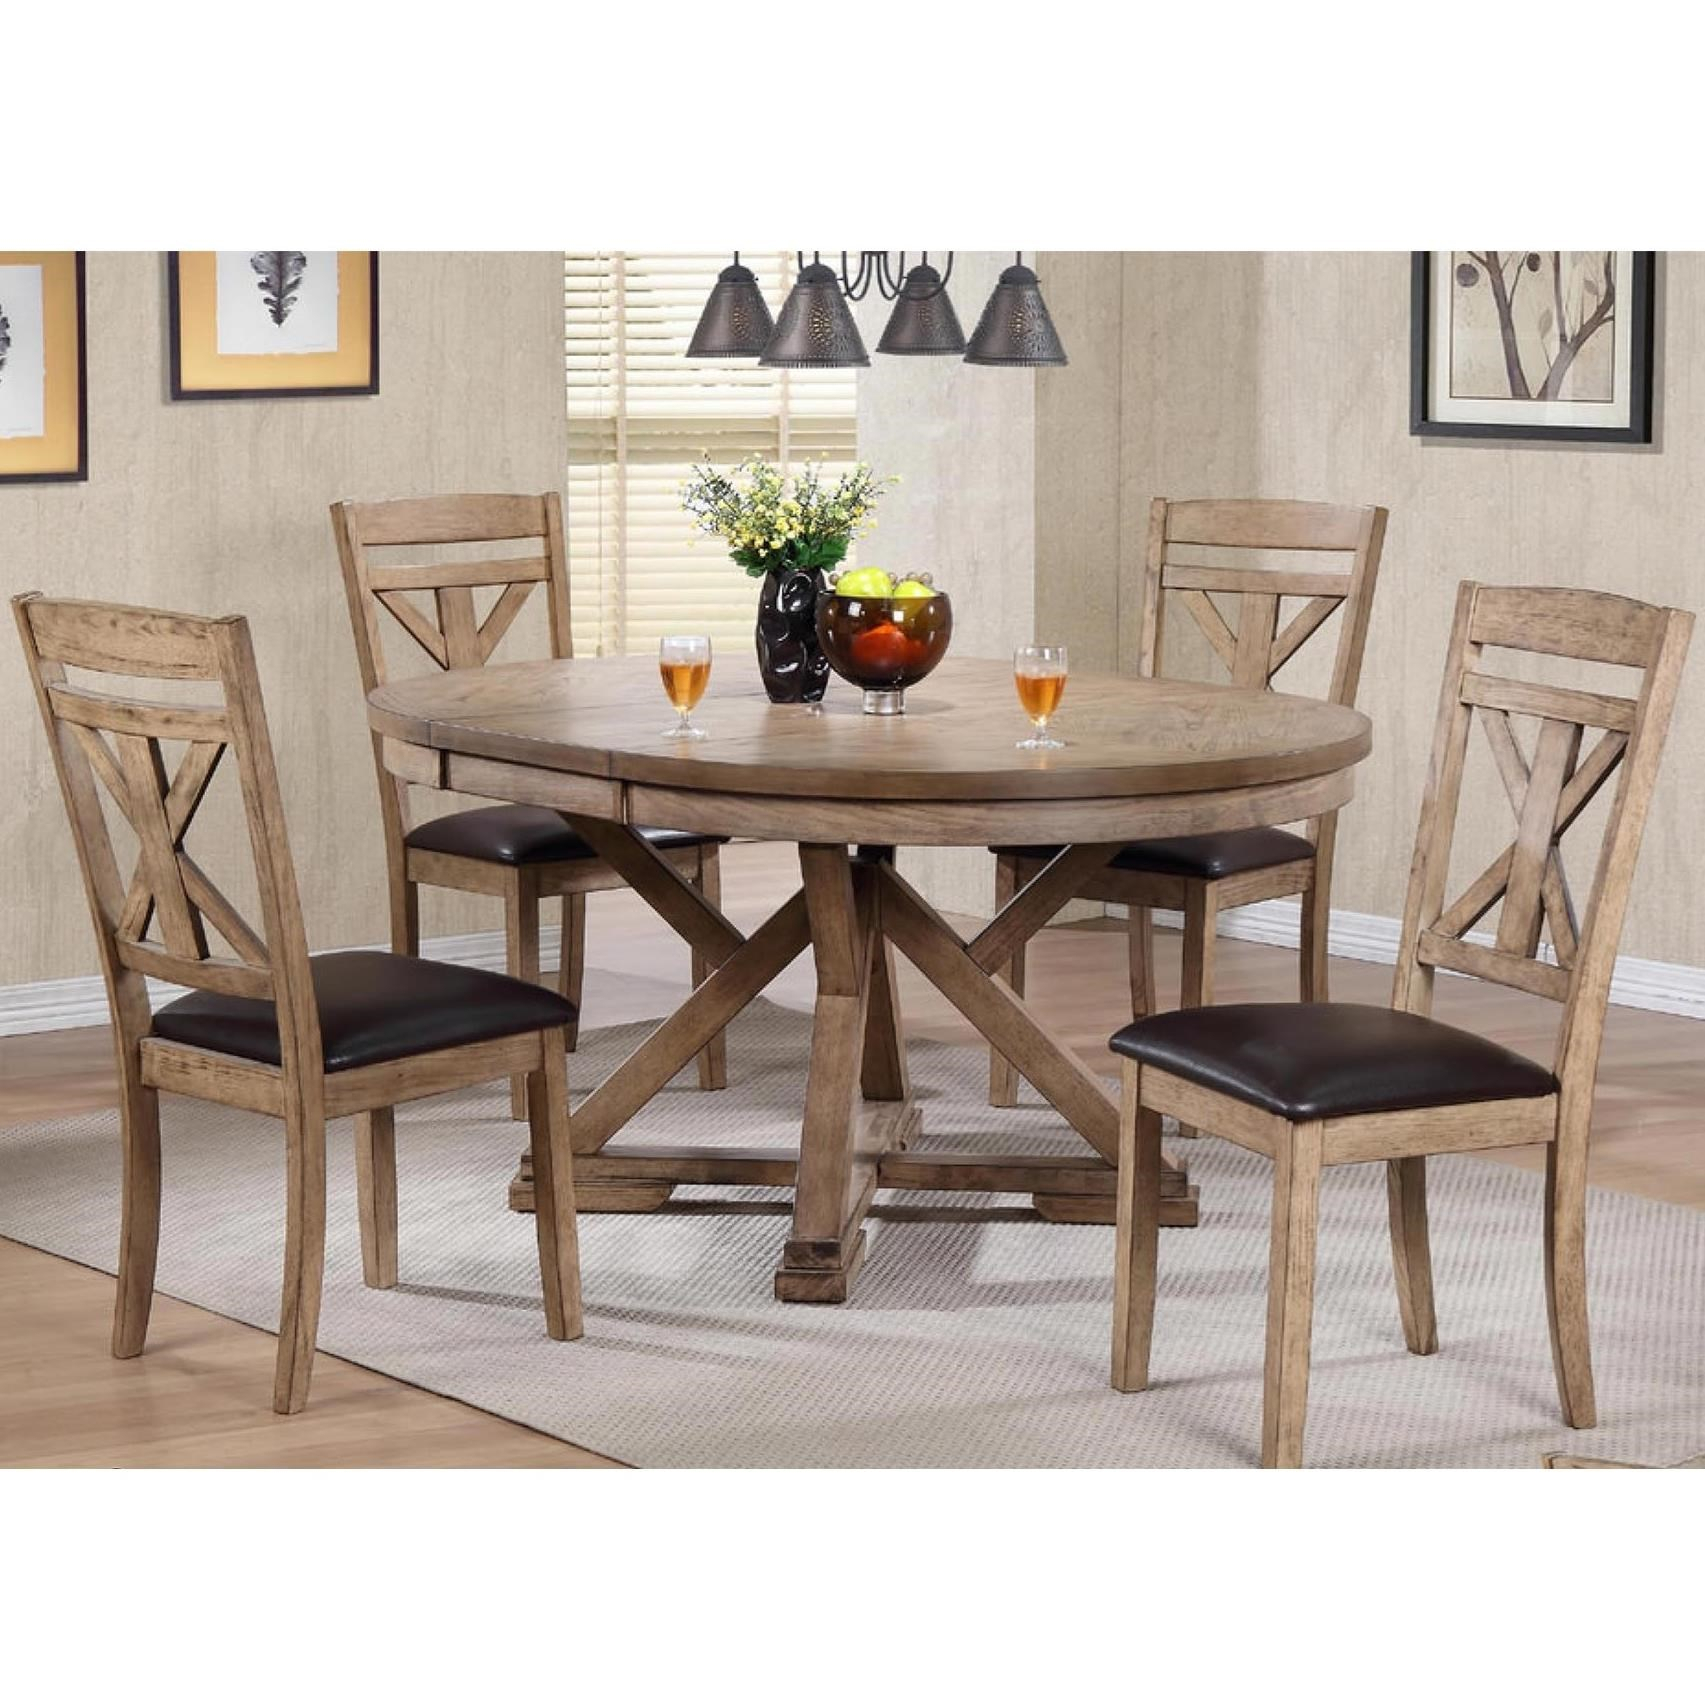 Grandview 5 Piece Dining Setwinners Only At Lindy's Furniture Company Throughout Most Recent Conover 5 Piece Dining Sets (Photo 11 of 20)